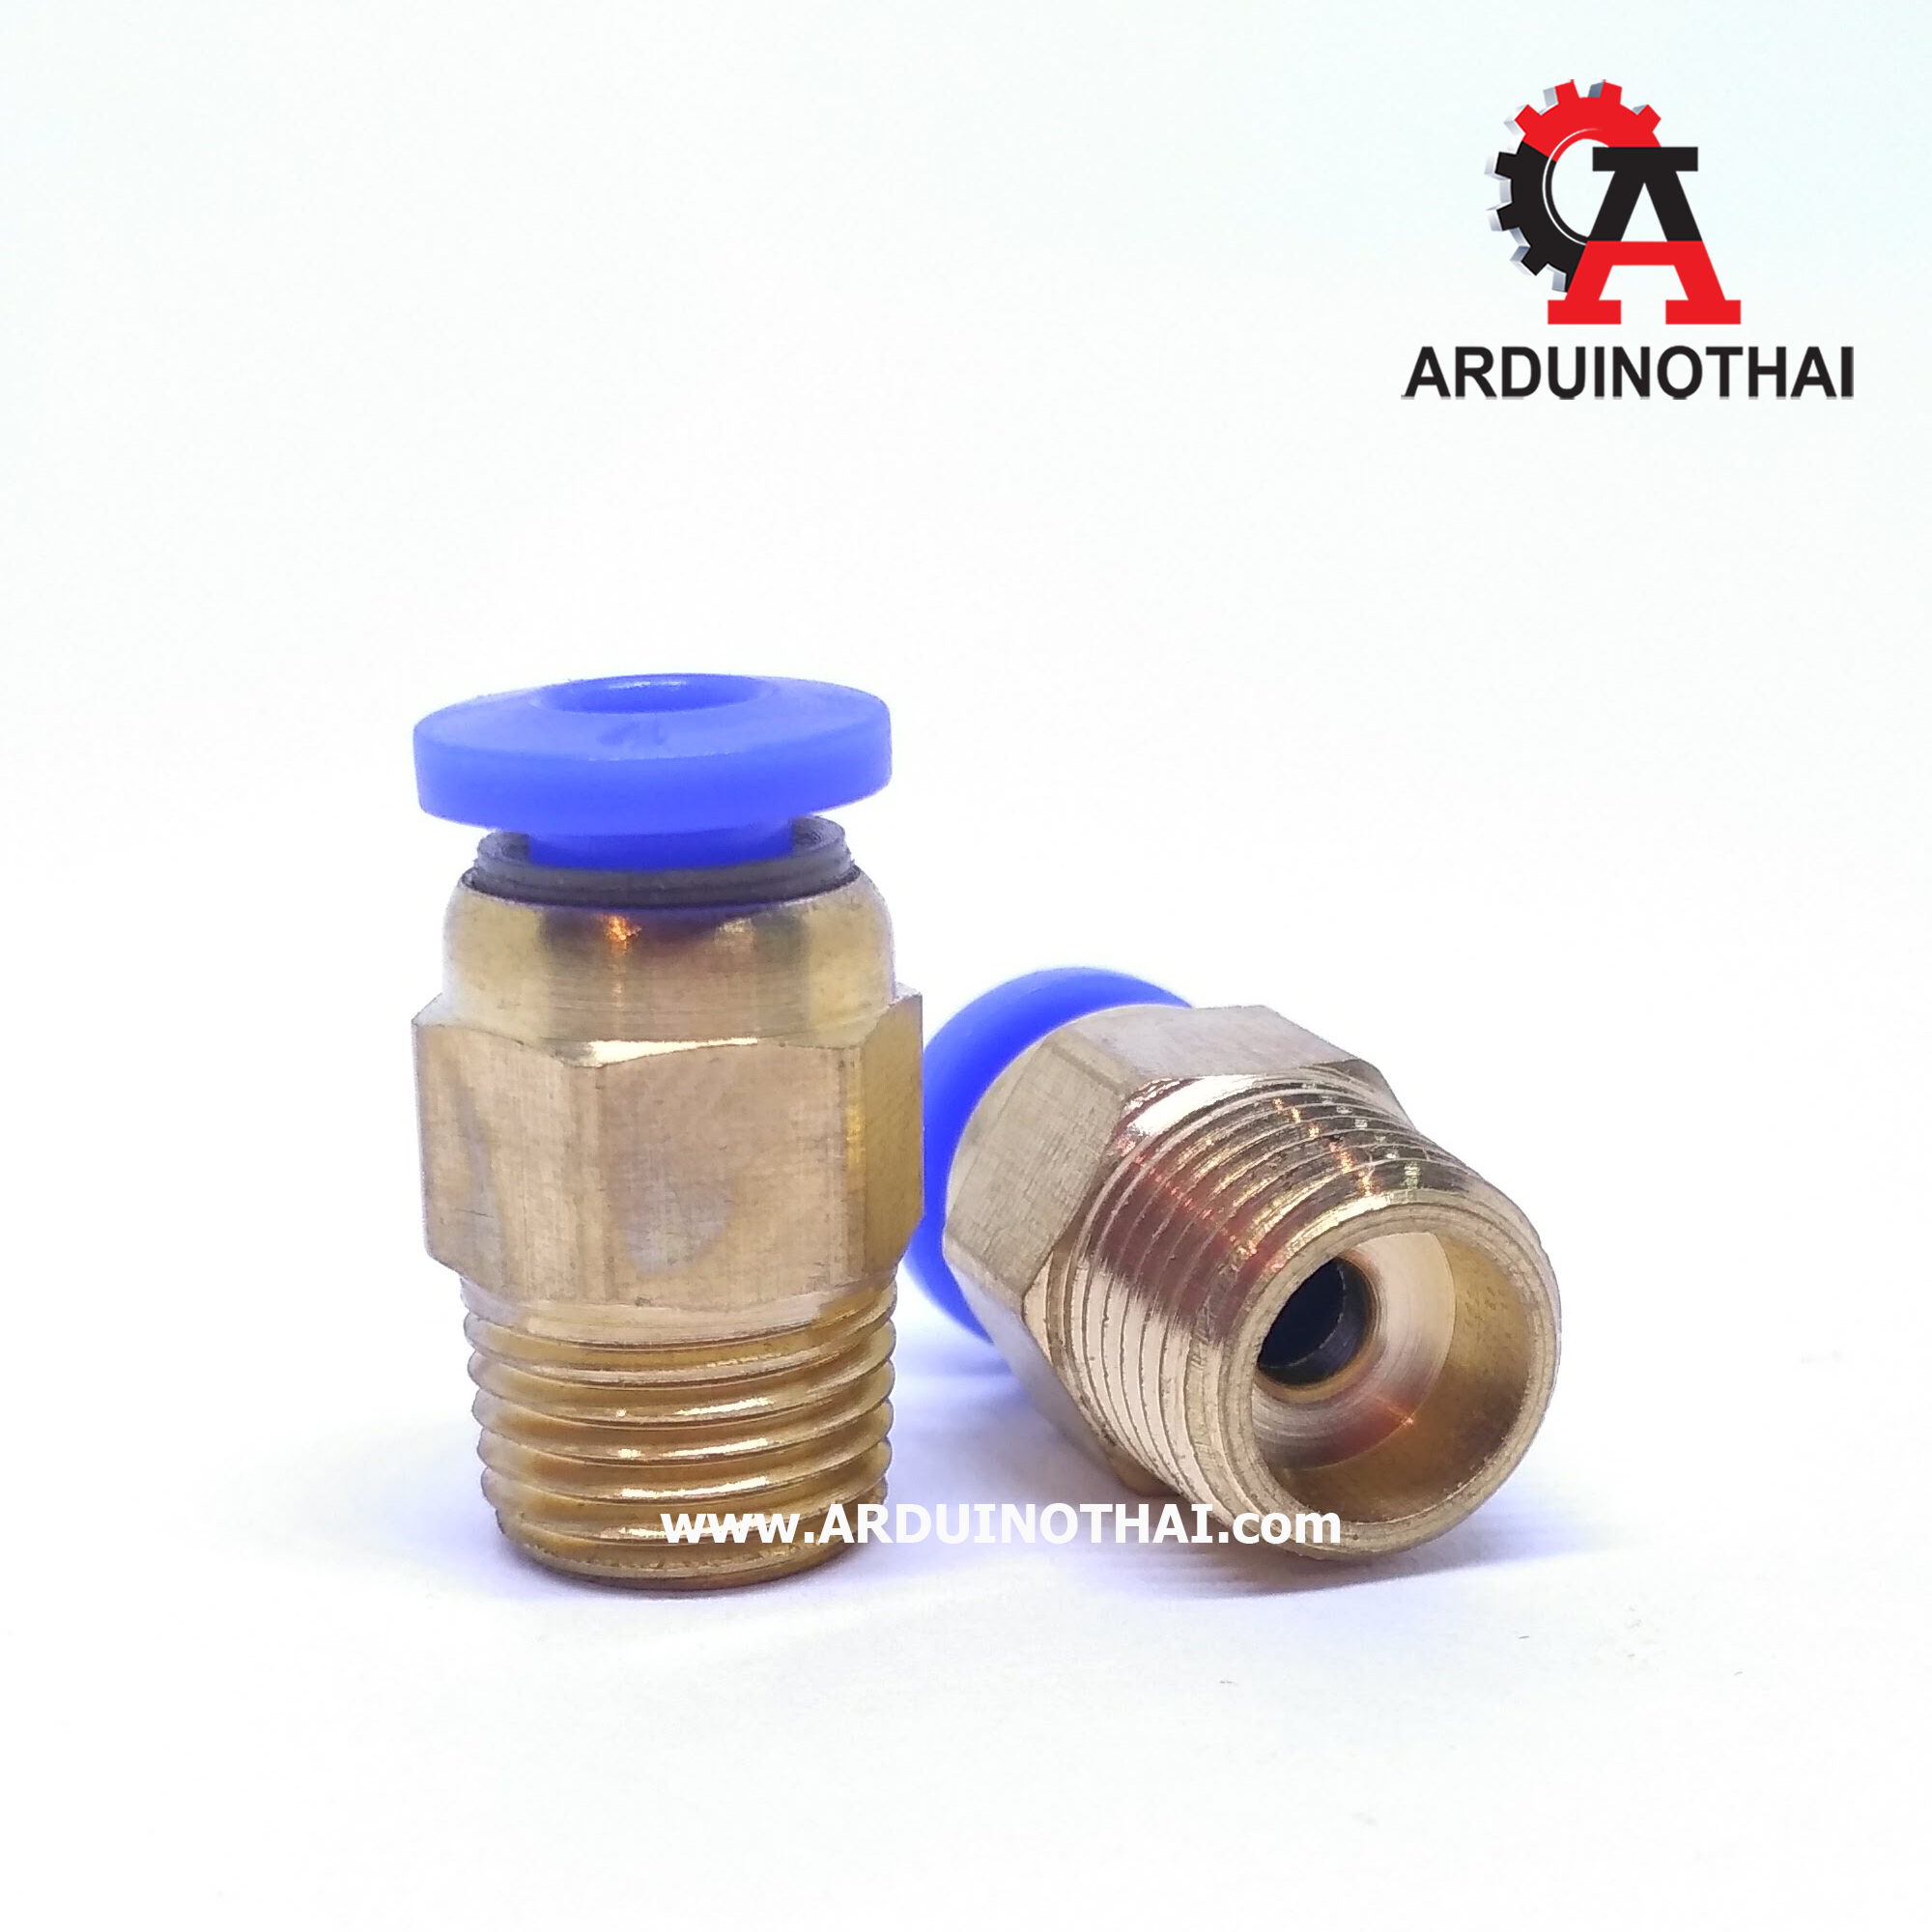 Pneumatic Connectors PC4-01 for 4mm OD tubing